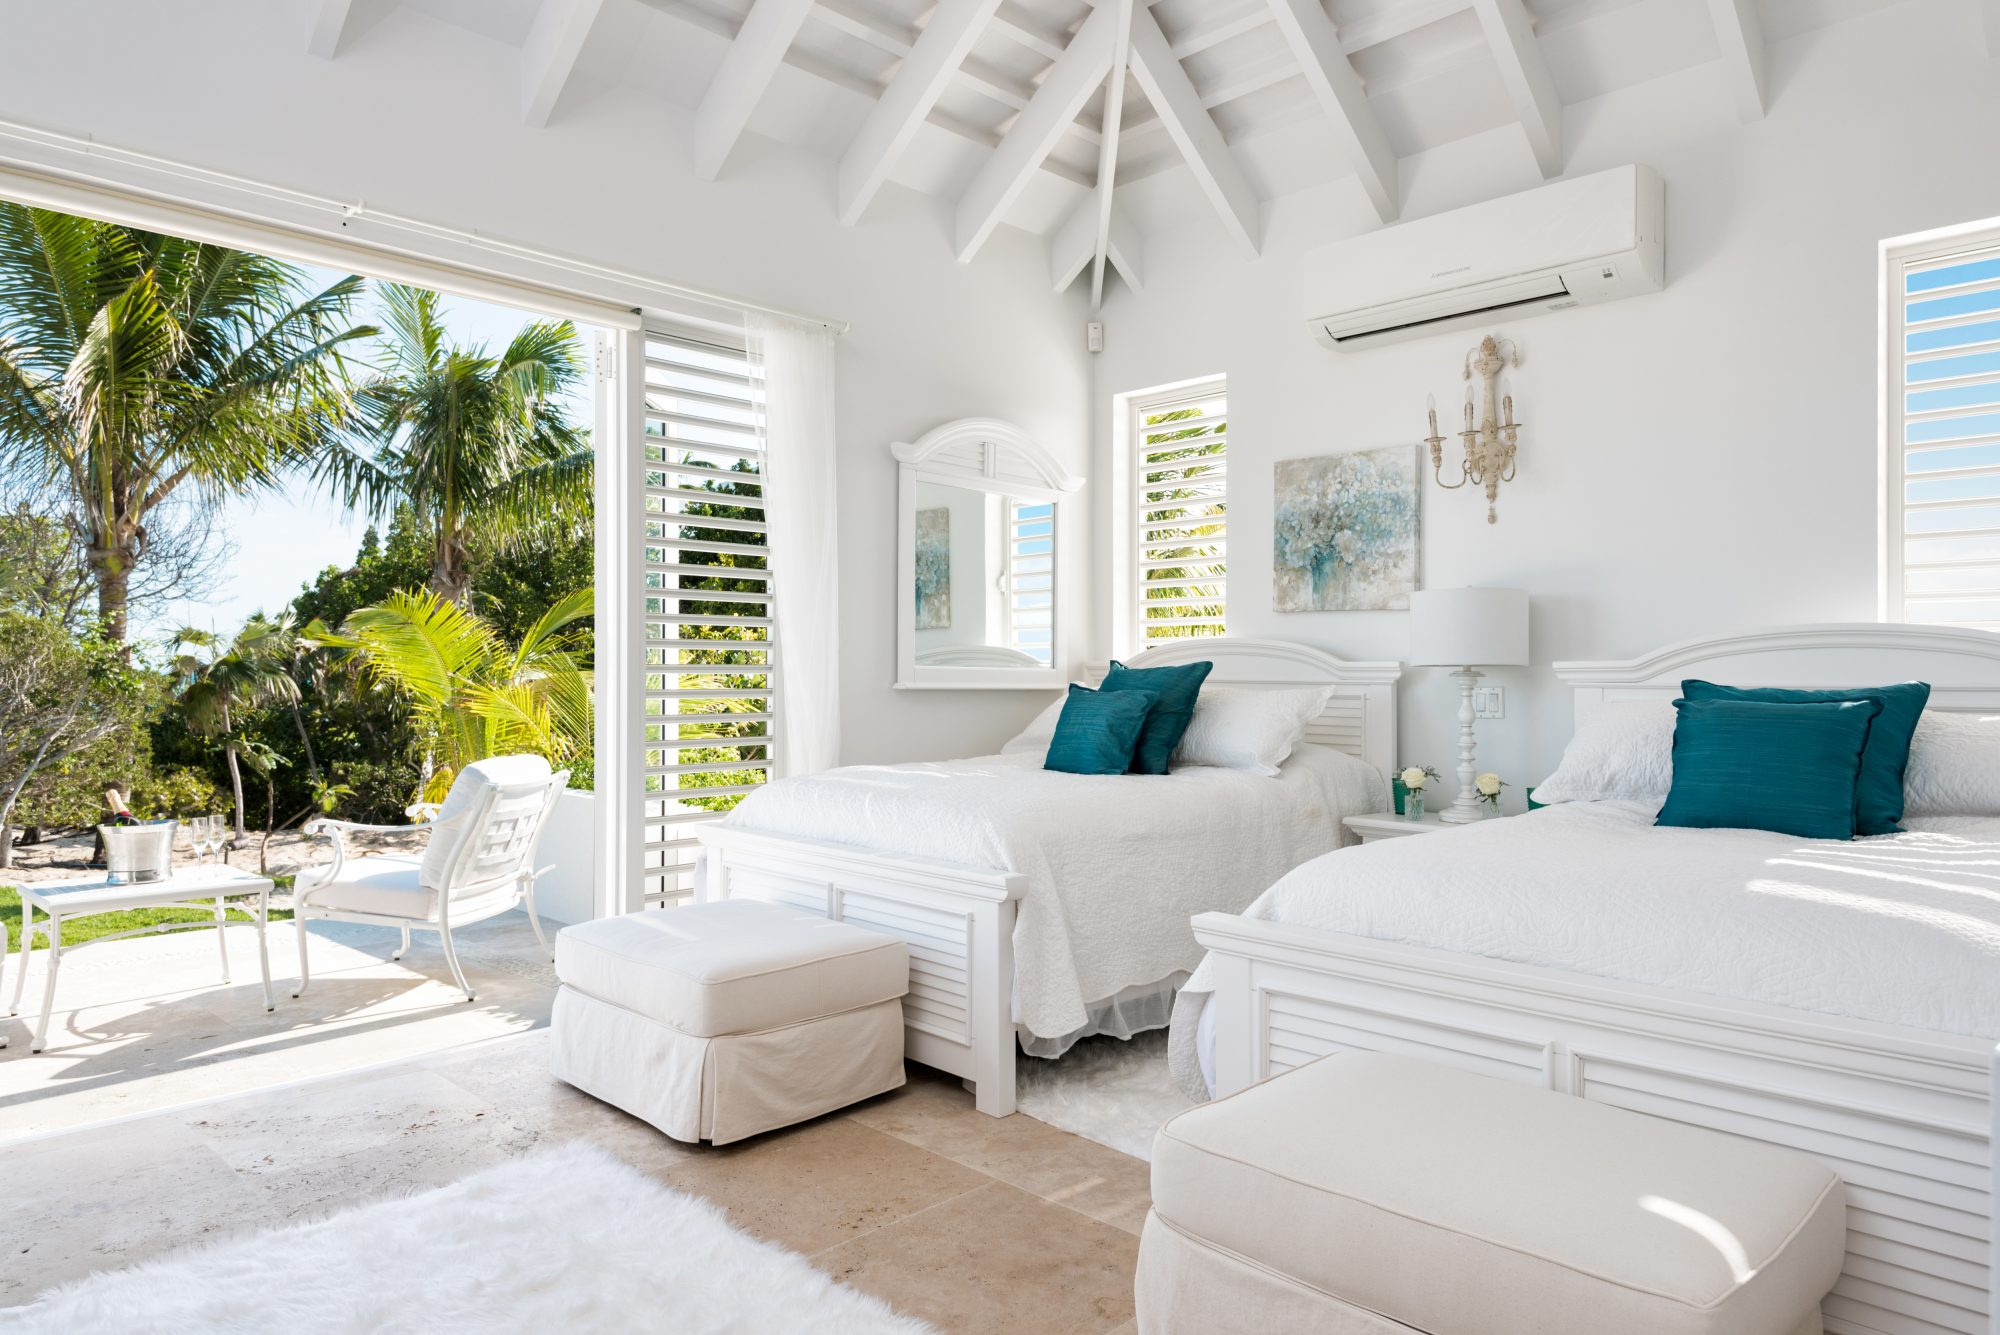 Kylie Jenner's airbnb house ; Photo Credit: Courtesy Airbnb